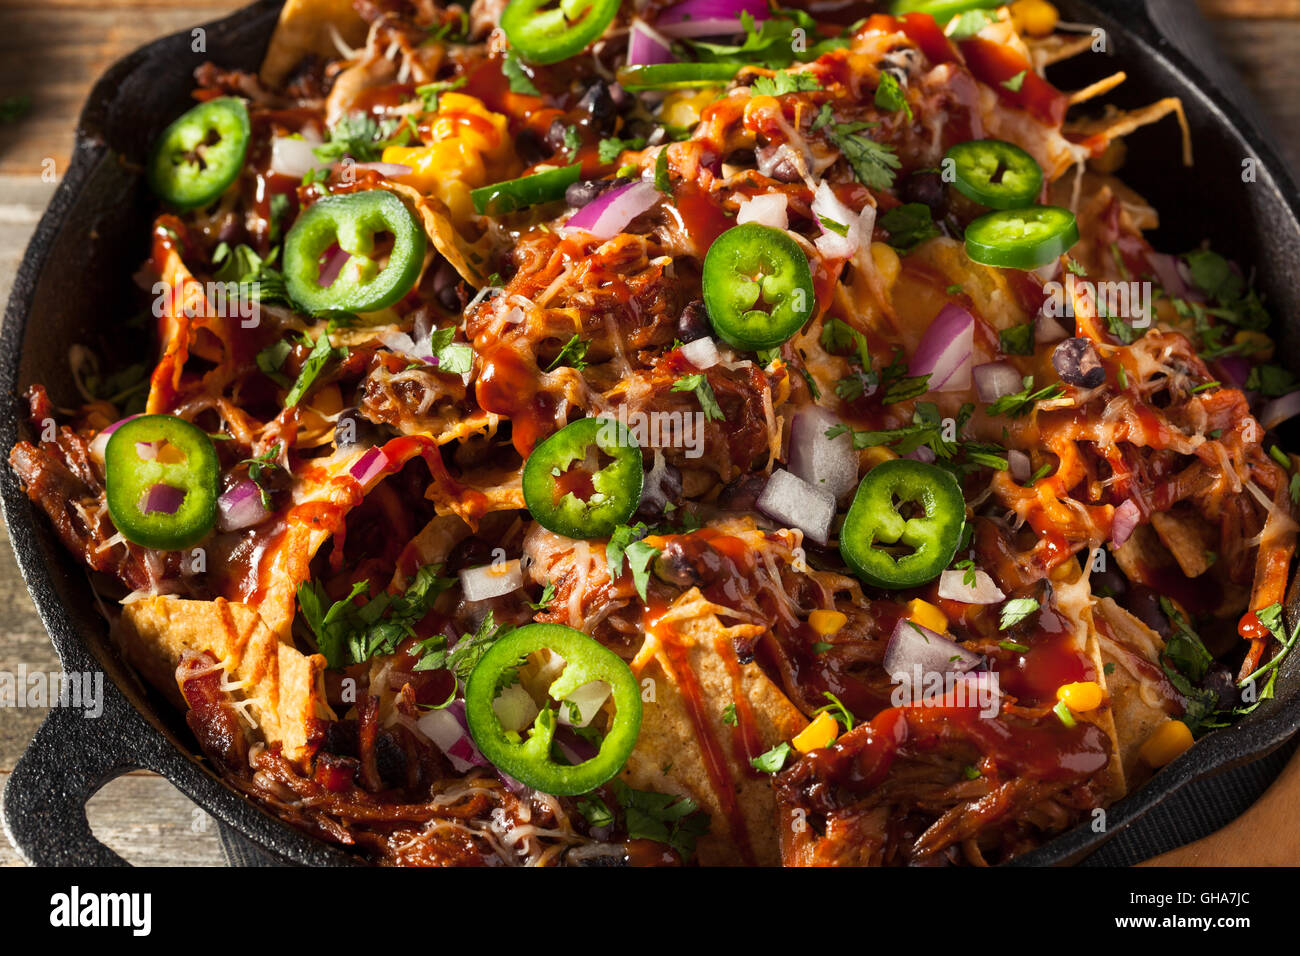 Homemade Barbecue Pulled Pork Nachos with Cheese and Peppers - Stock Image